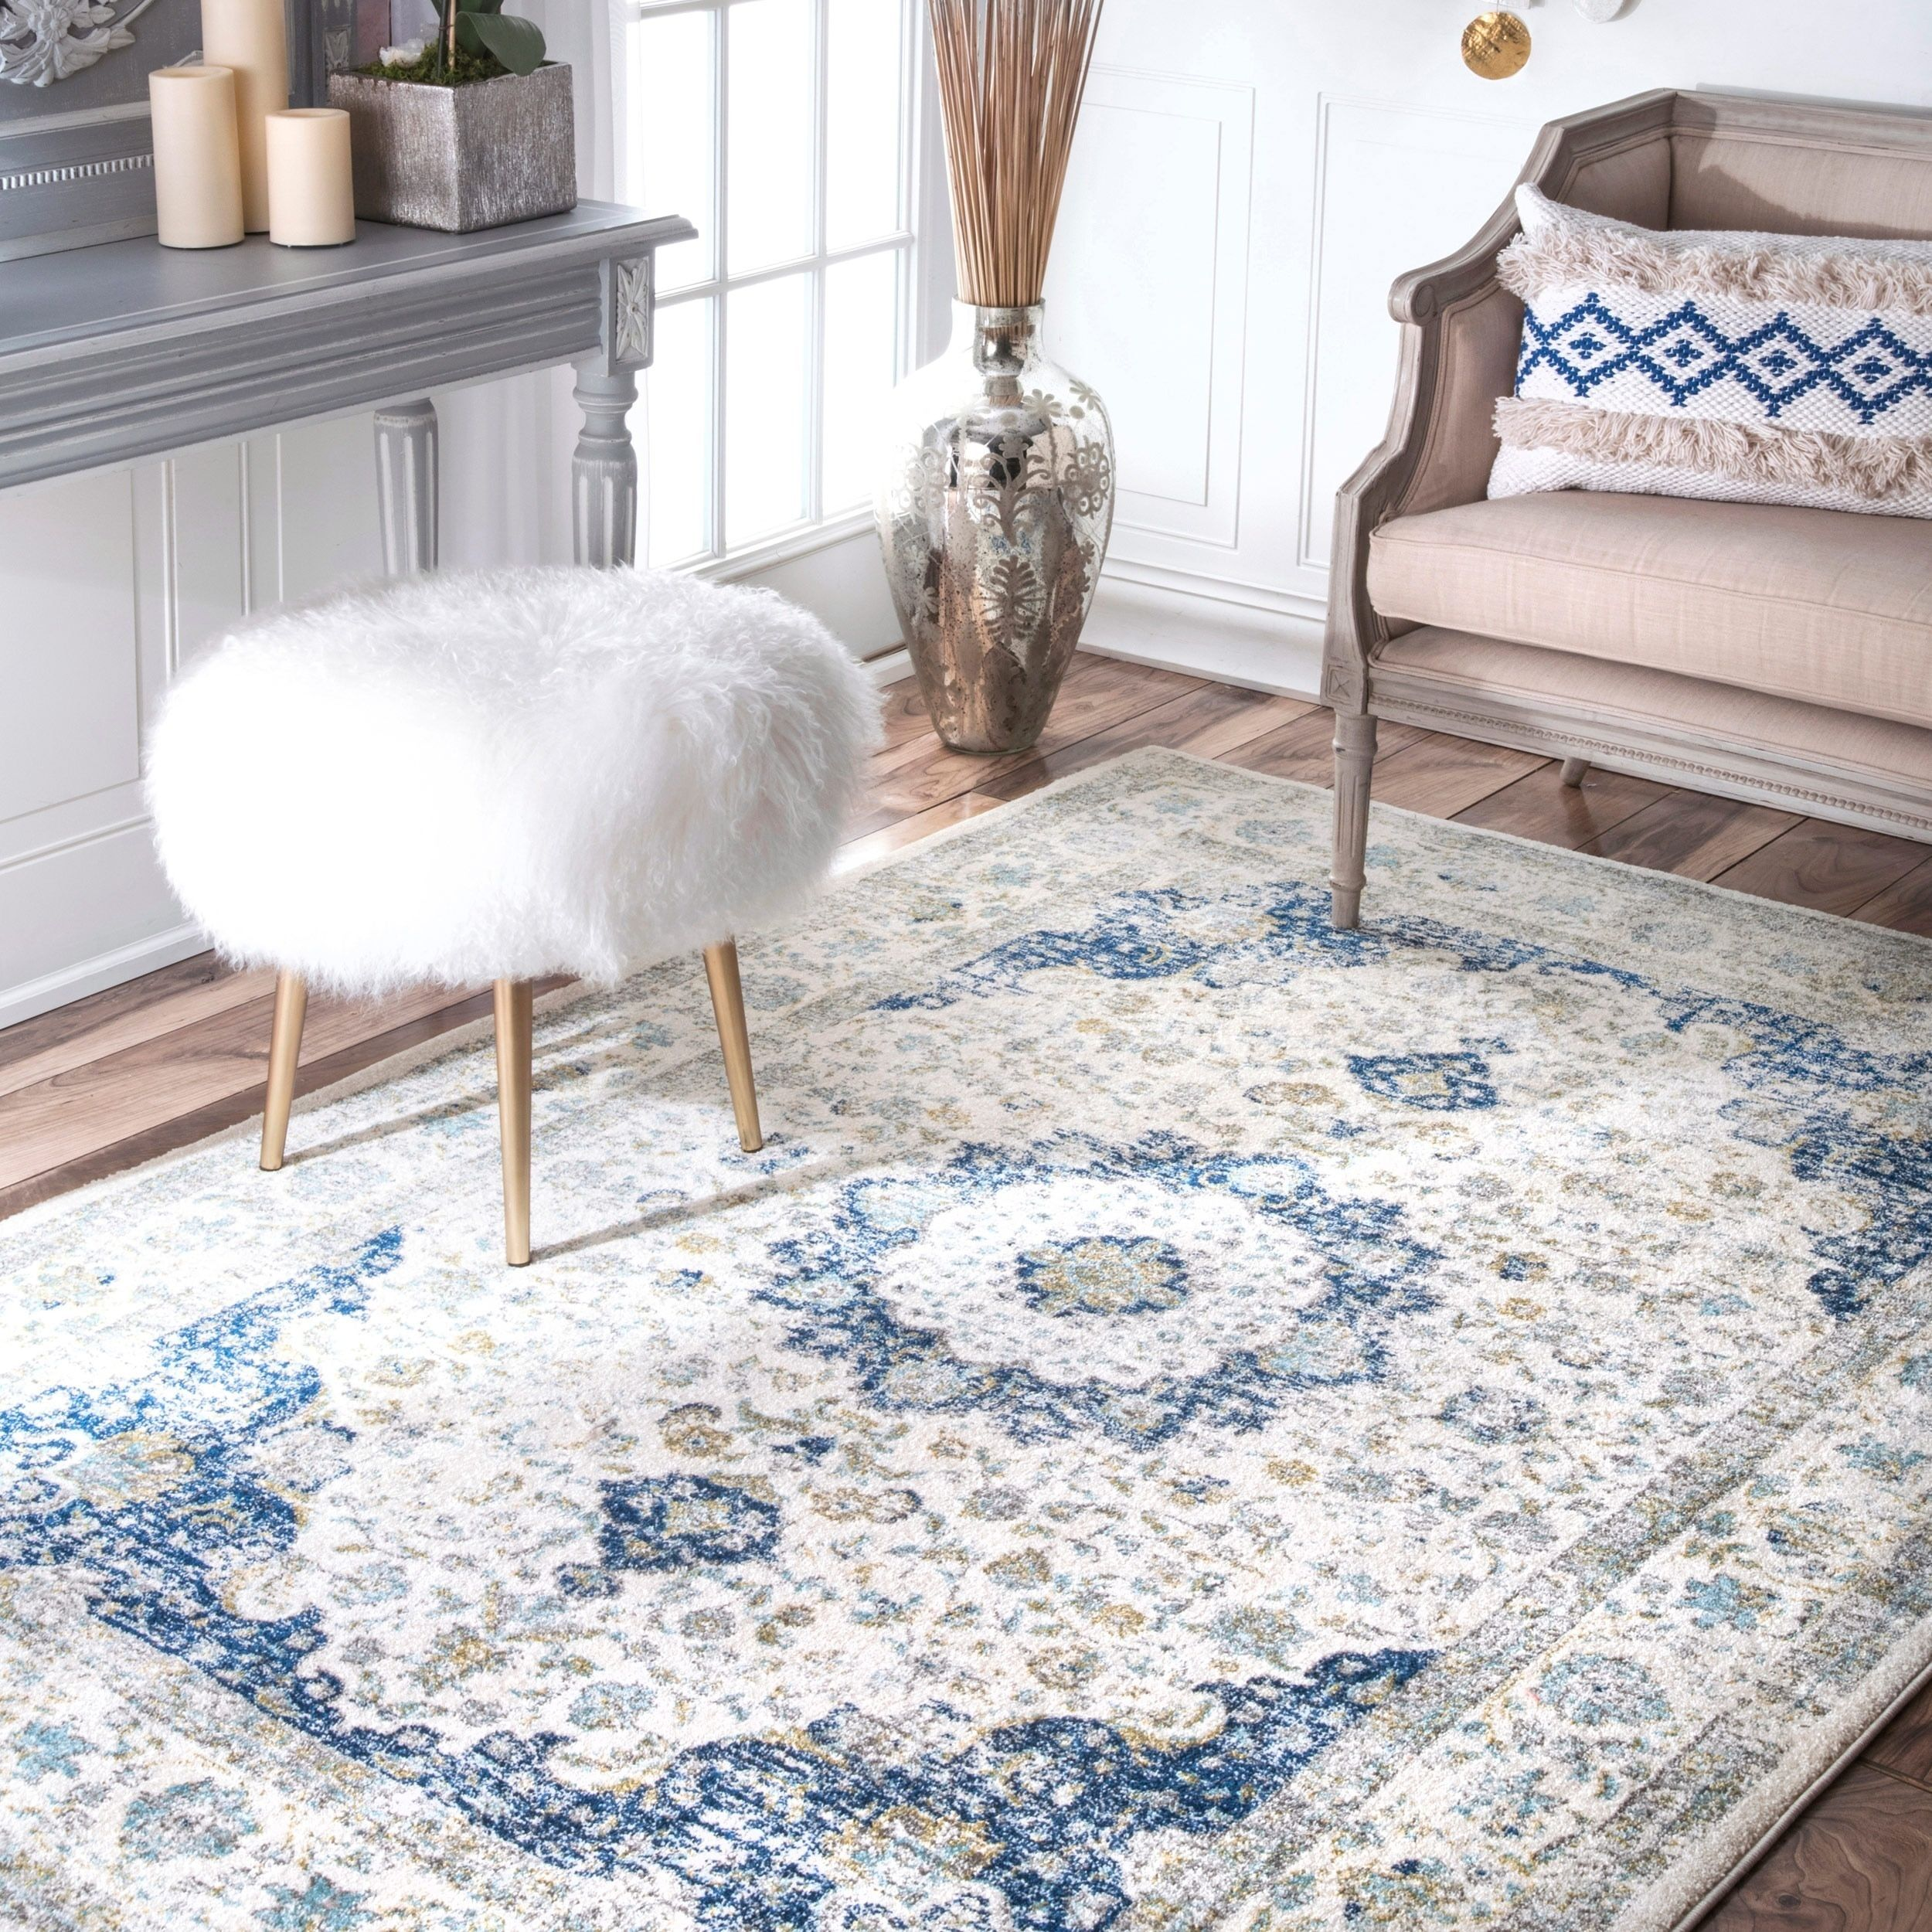 On Sale 7x9 - 10x14 Rugs: Use large area rugs to bring a new mood to ...